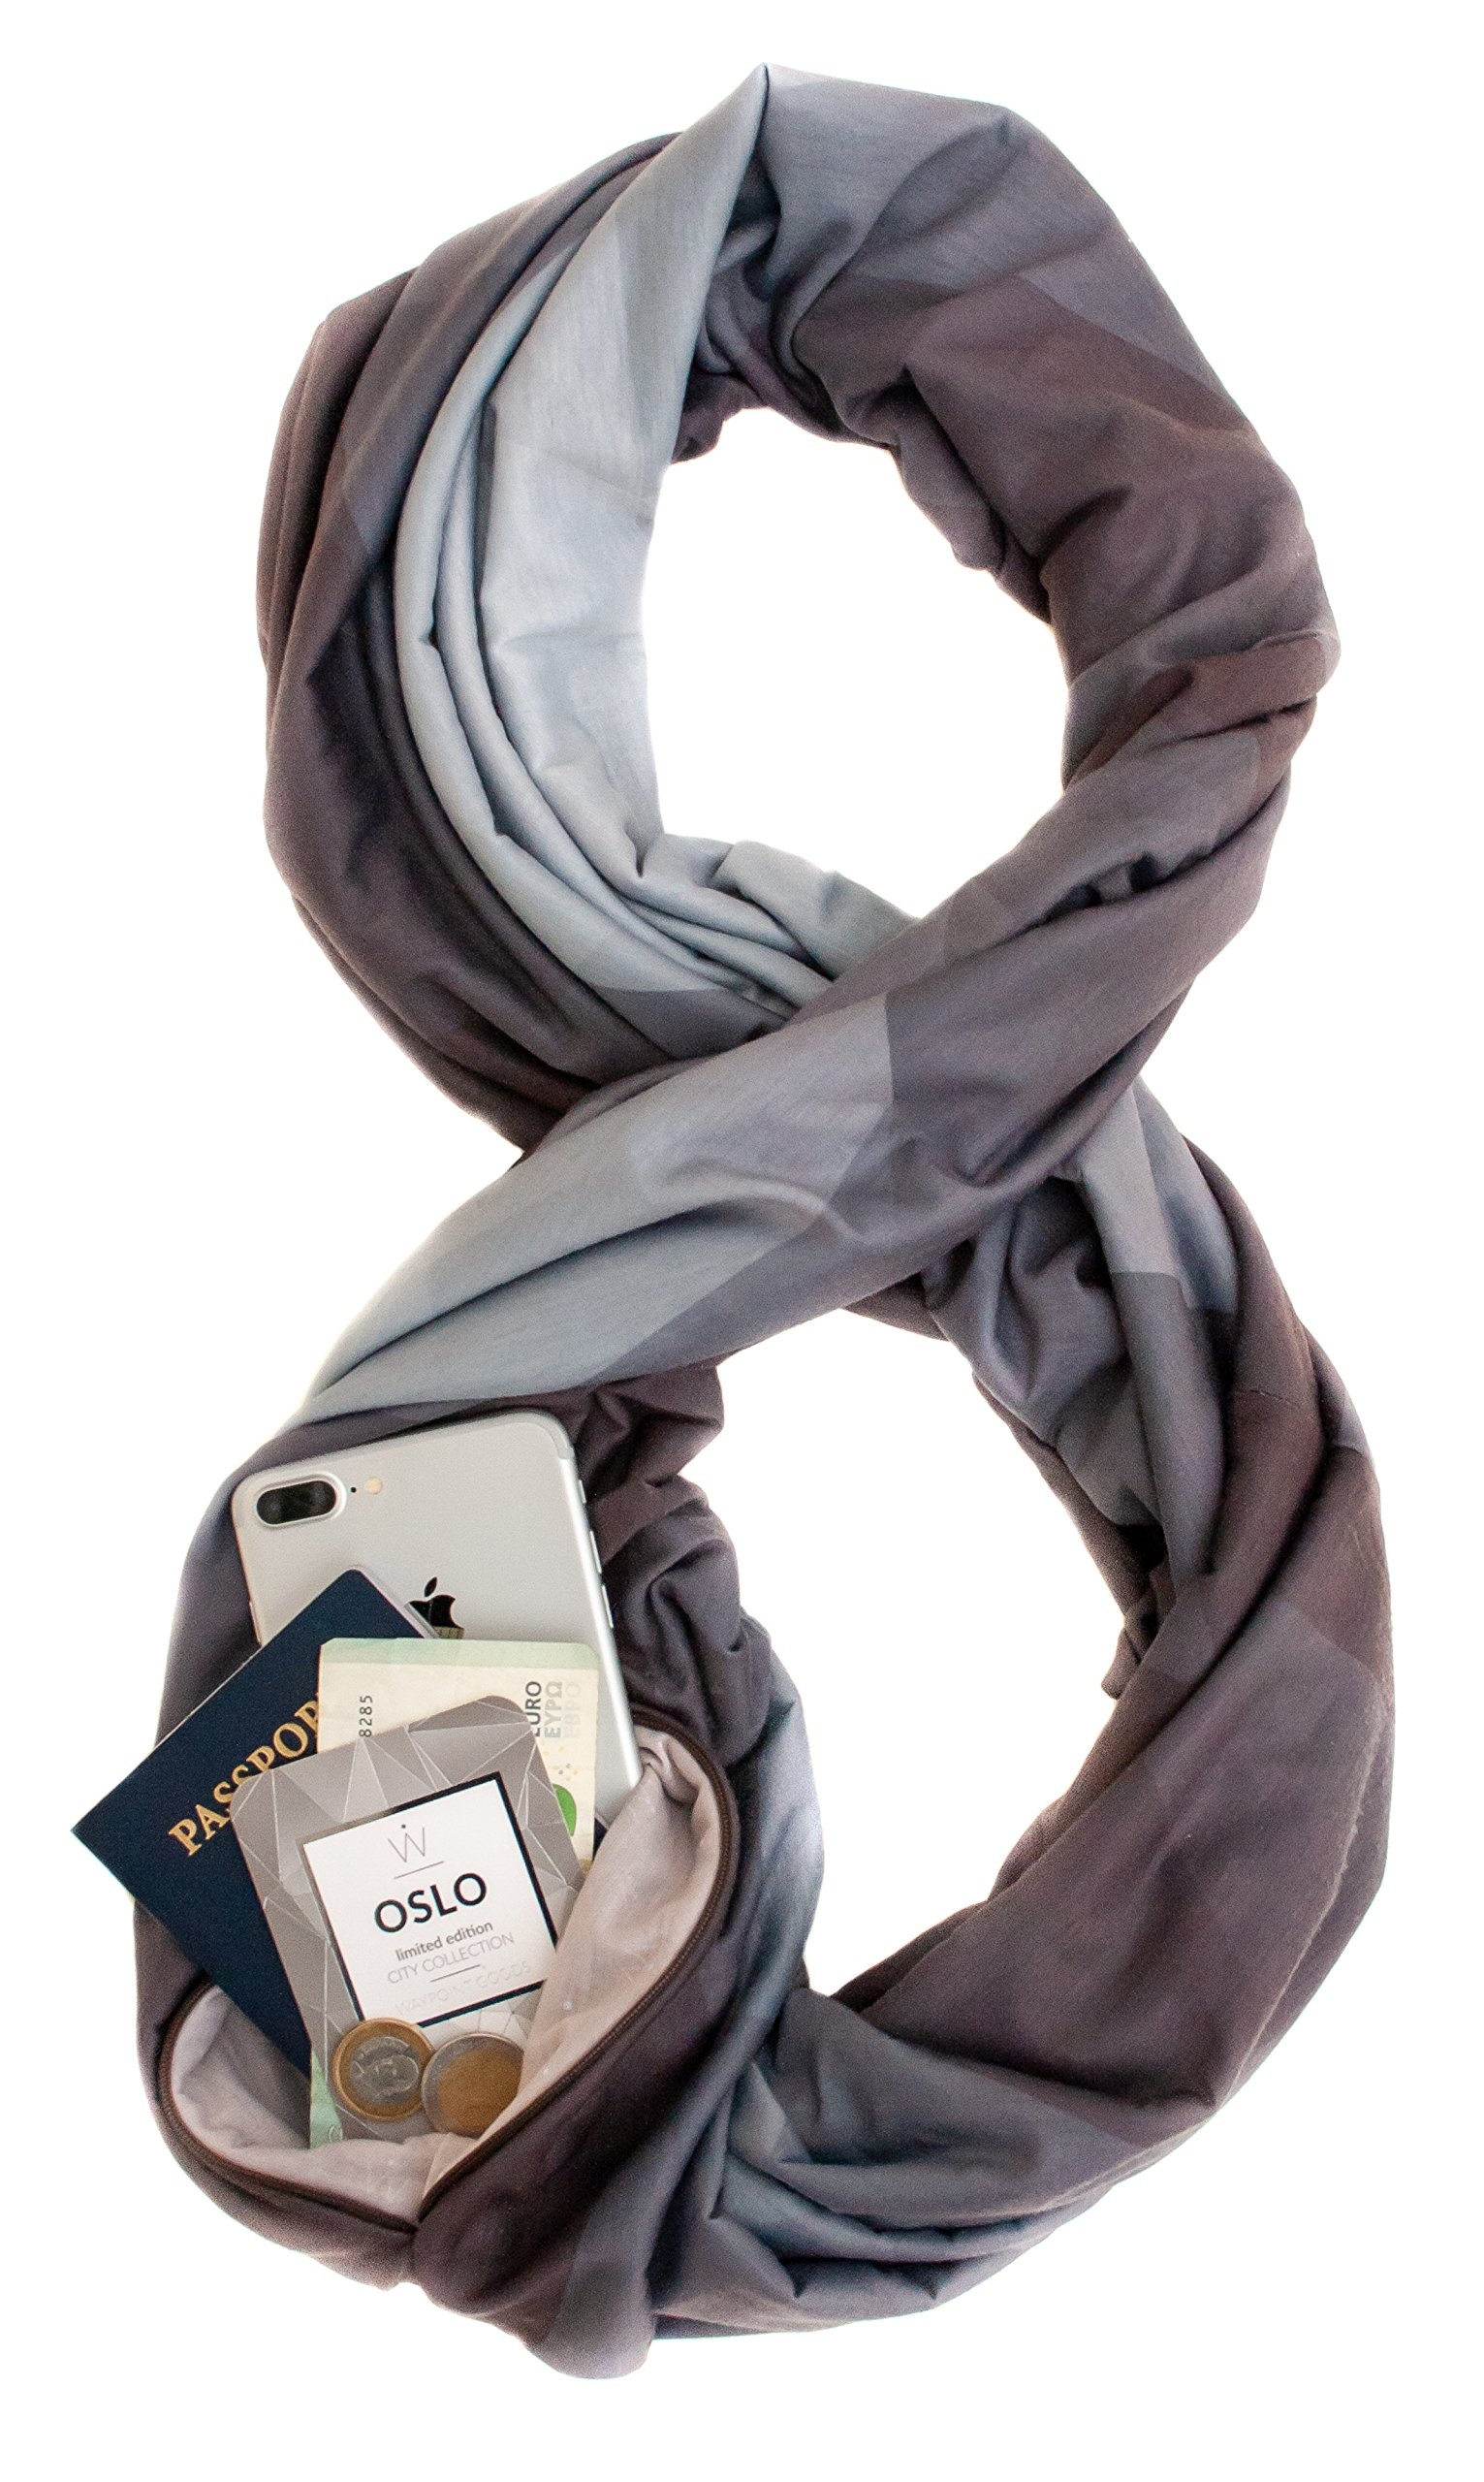 TRAVEL SCARF by WAYPOINT GOODS//Infinity Scarf w/Secret Hidden Zipper Pocket (Oslo)